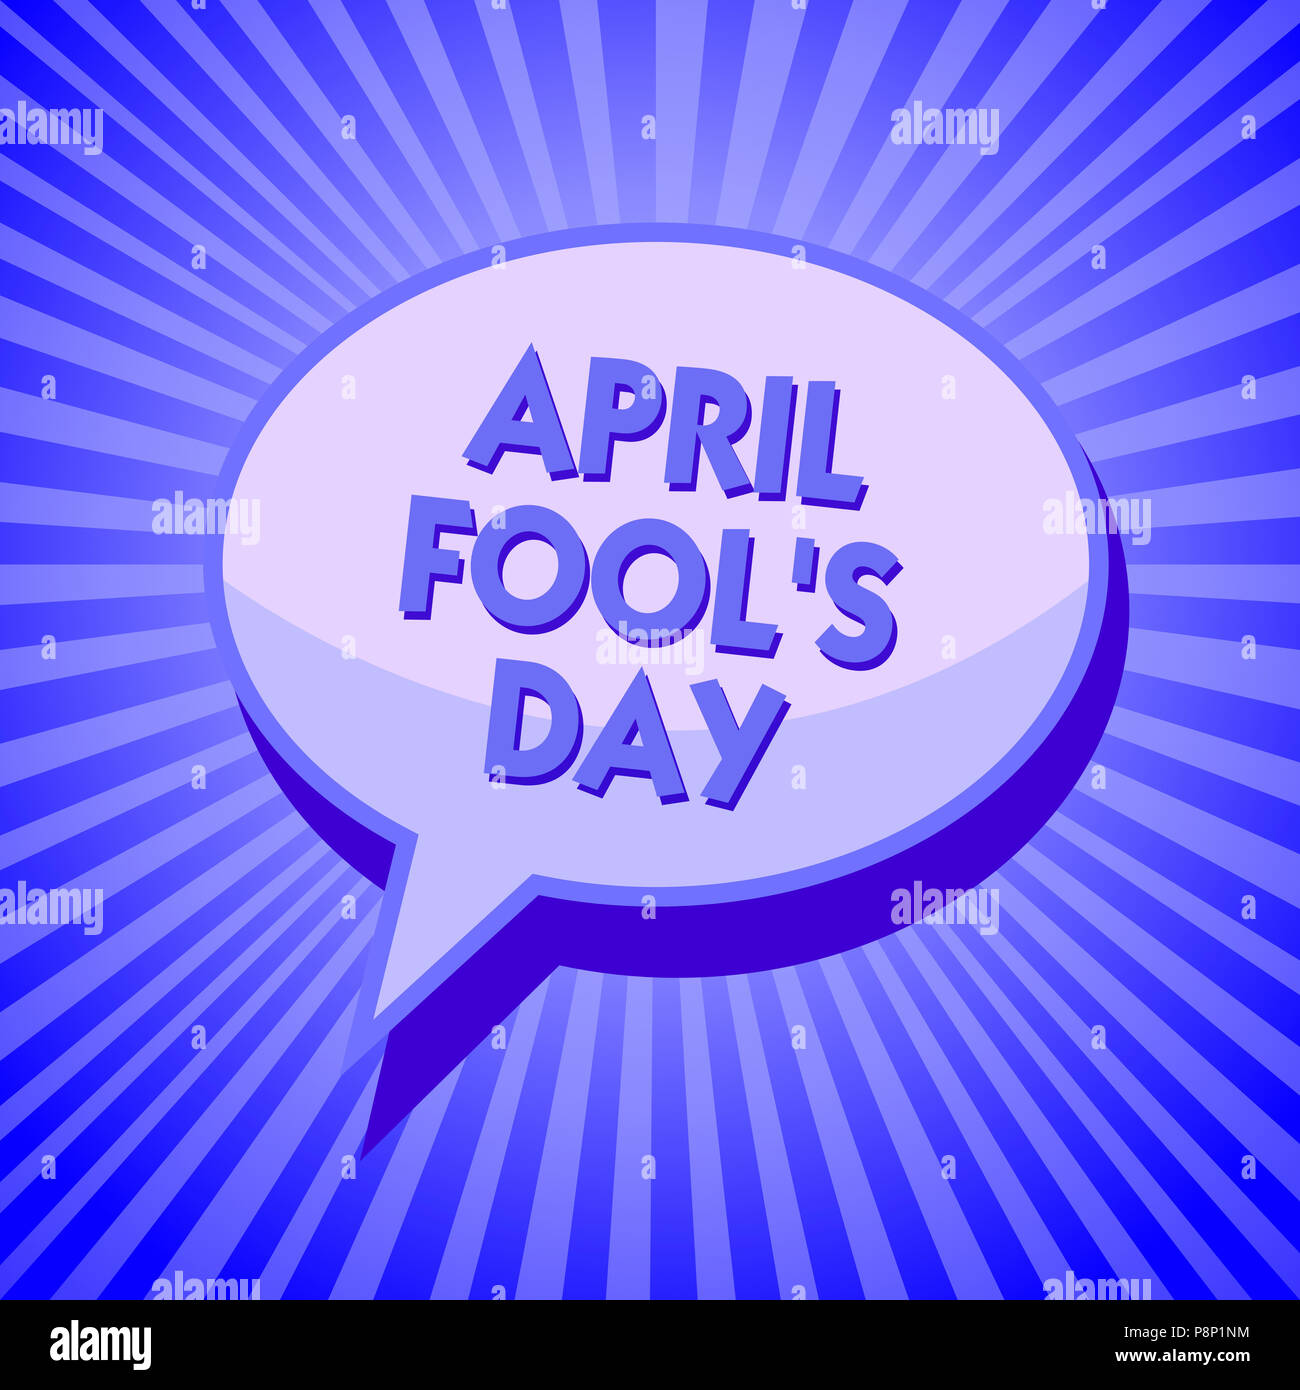 Writing note showing April Fool s is Day. Business photo showcasing Practical jokes humor pranks Celebration funny foolish Sparkling waves design scri - Stock Image